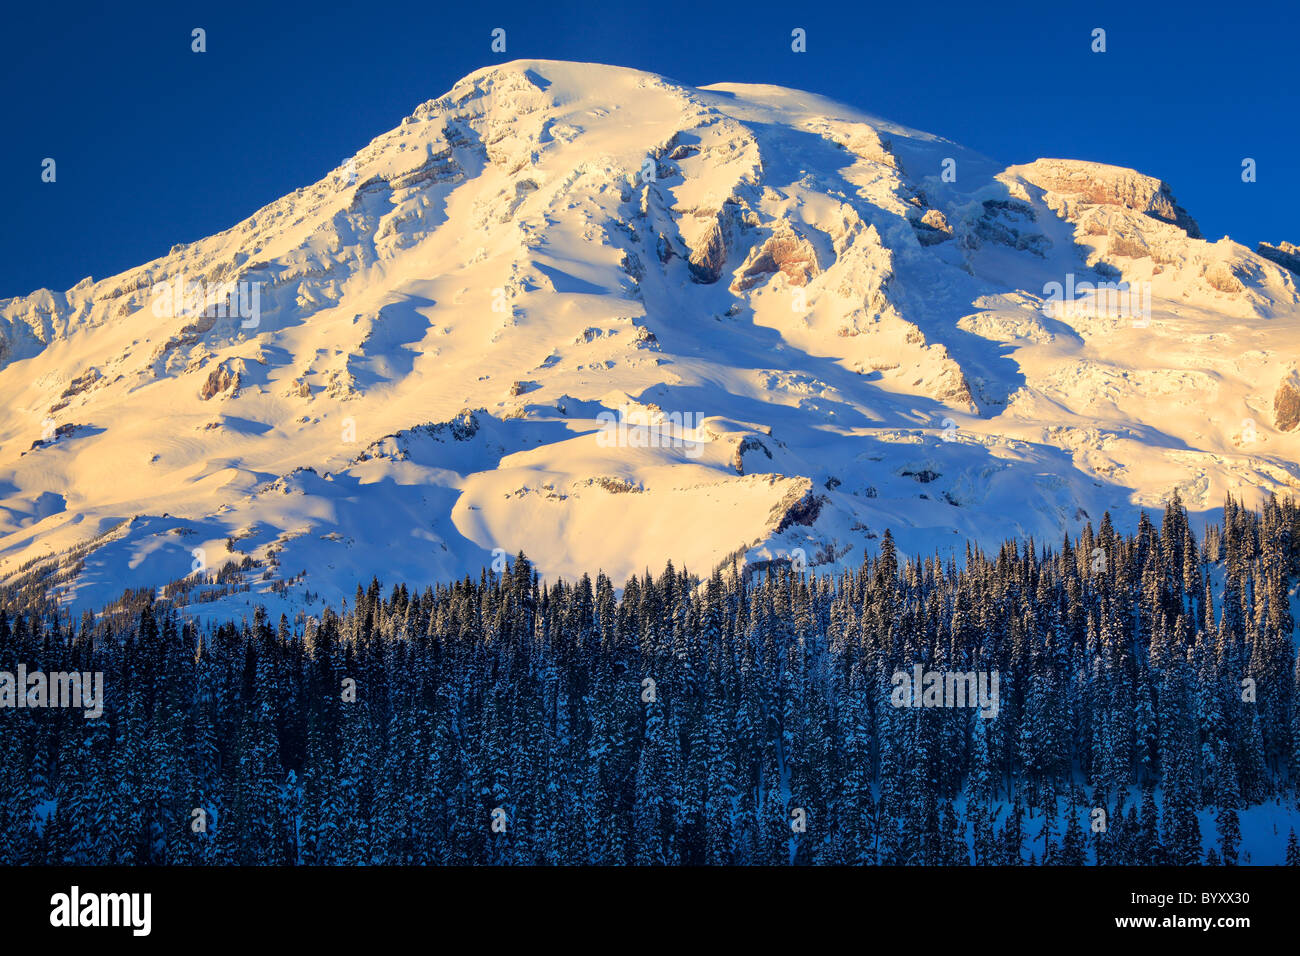 View of the south face of Mount Rainier at  sunset in the midst of winter - Stock Image